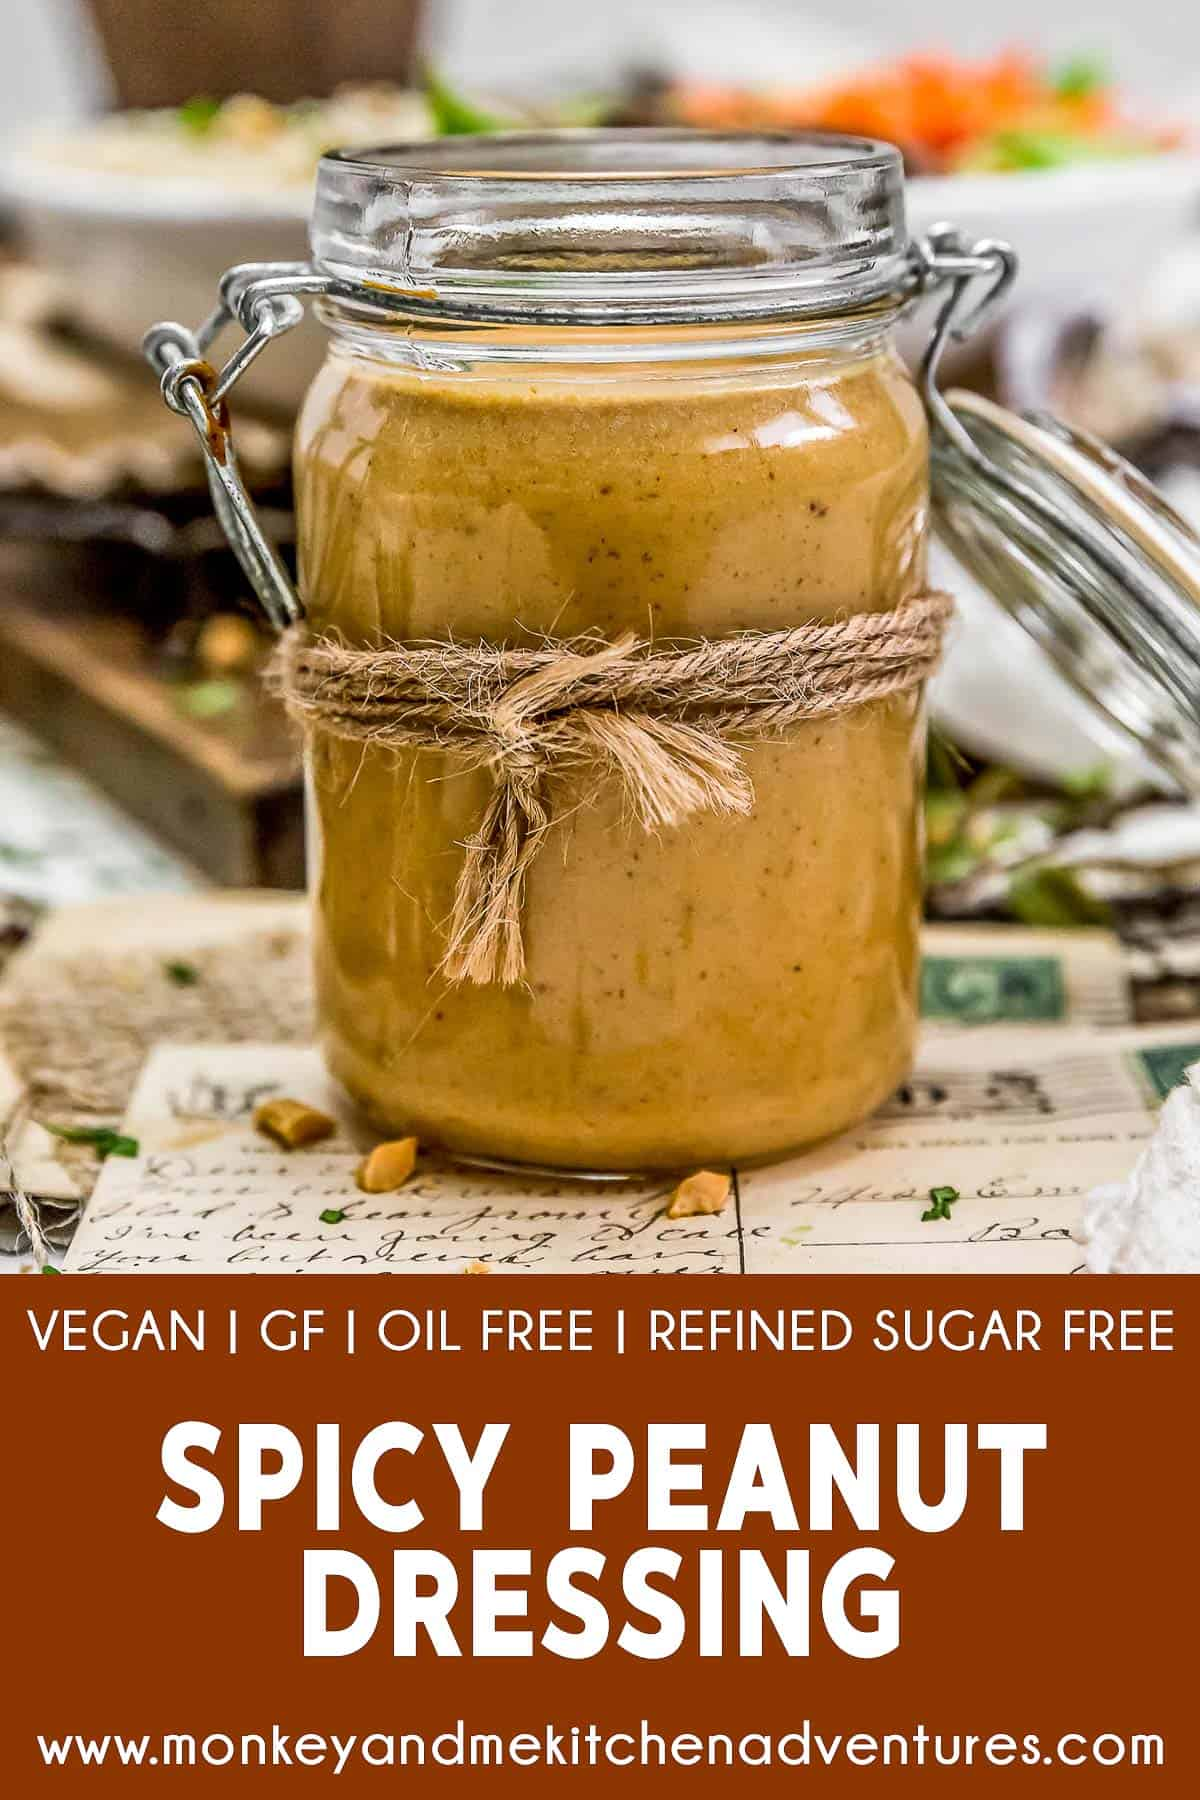 Spicy Peanut Dressing with text description